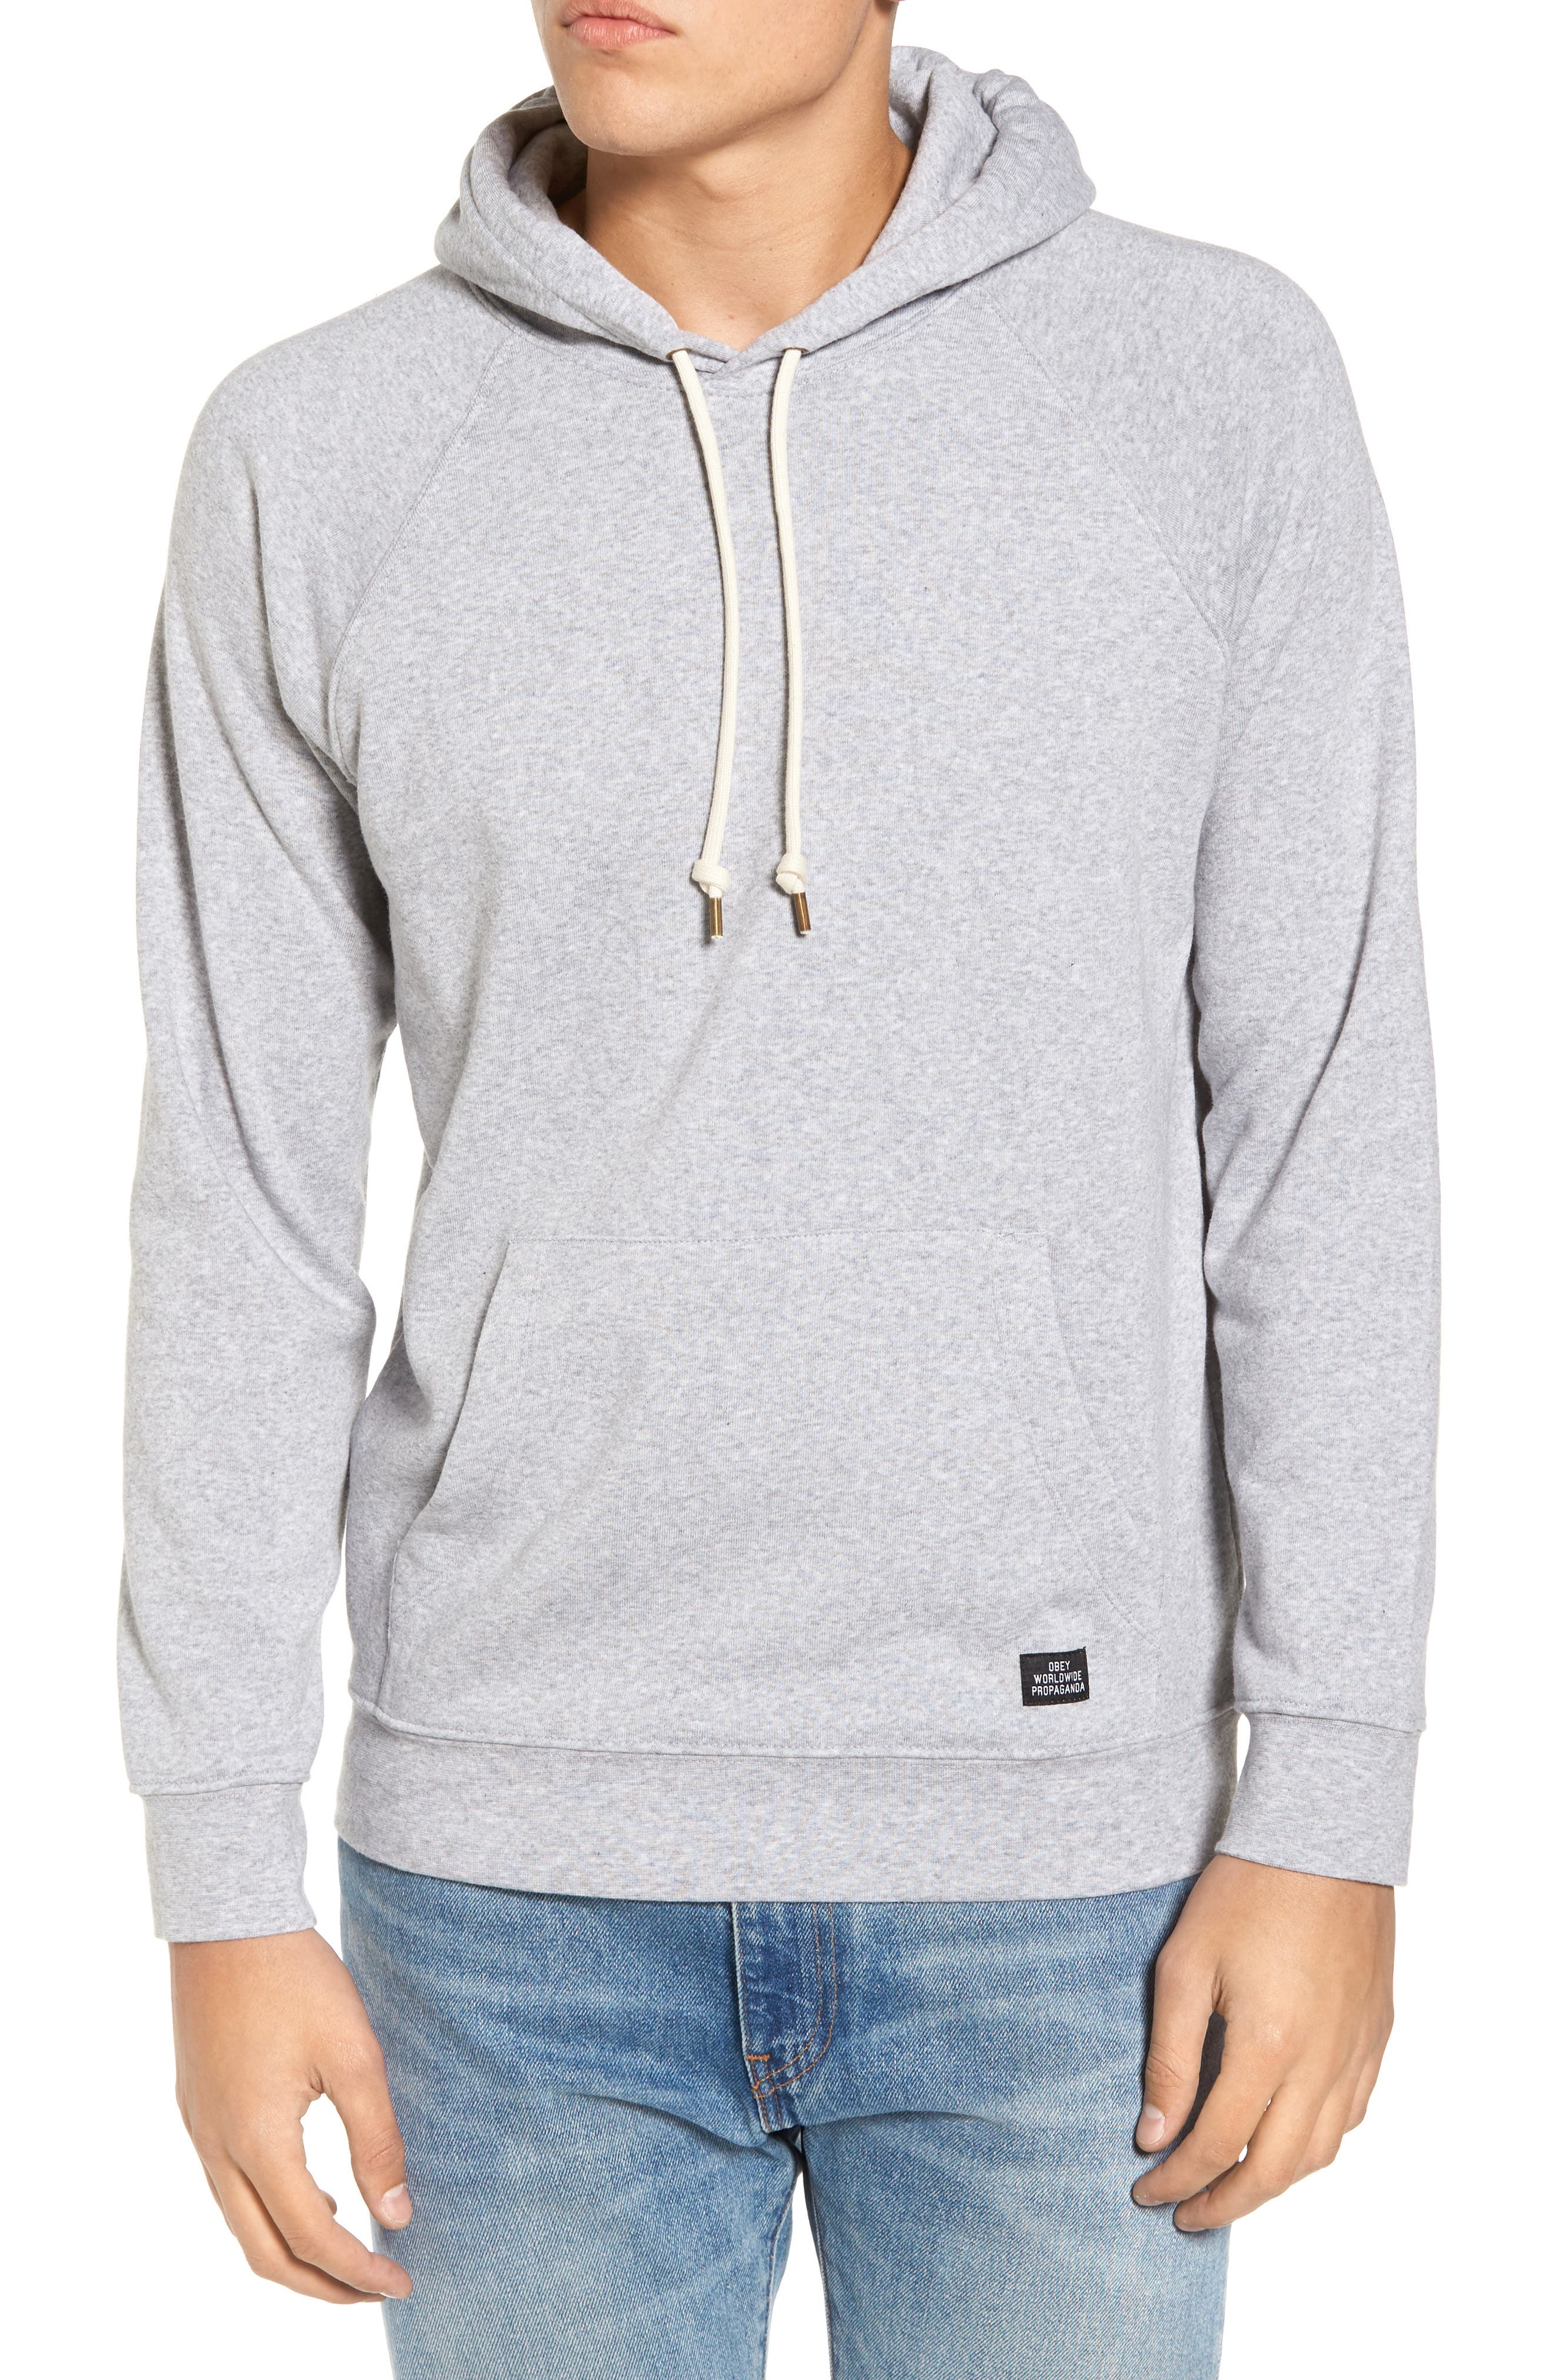 Lofty Creature Comforts Hoodie,                             Main thumbnail 1, color,                             061